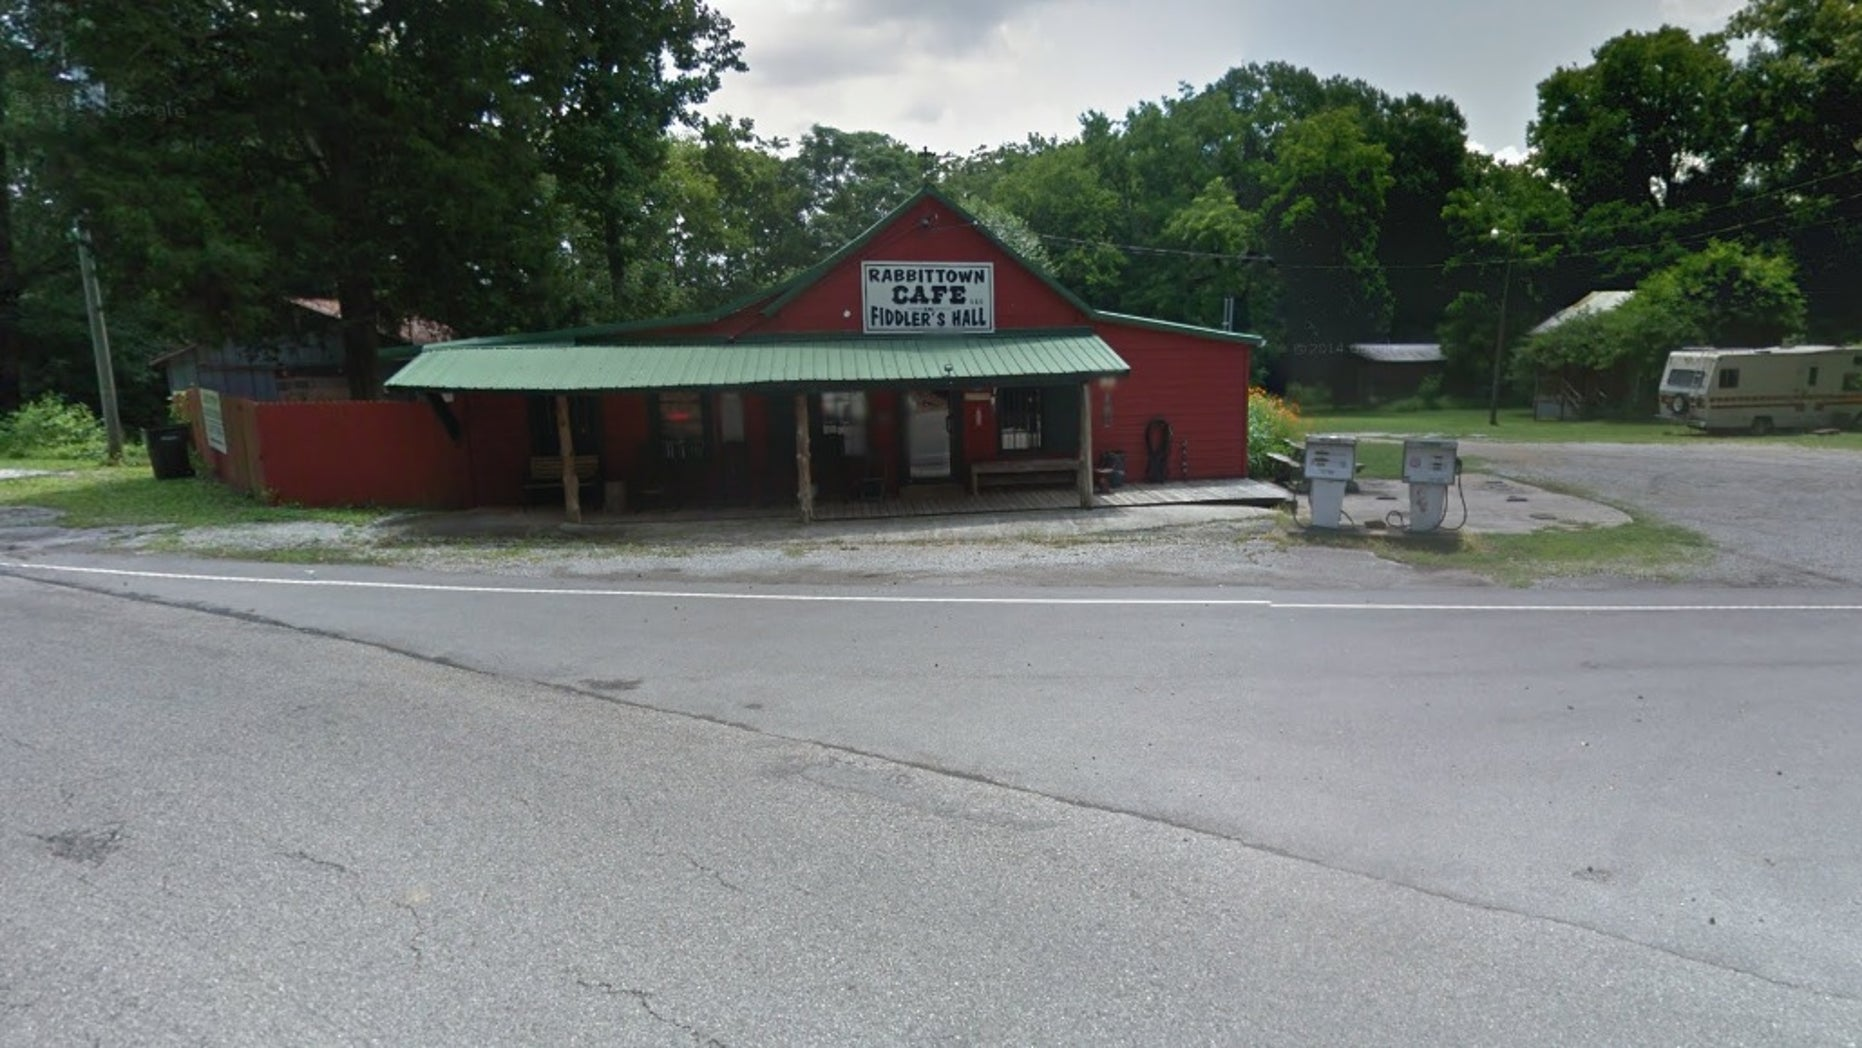 A man shot and killed himself in the parking lot of a general store in Calhoun County, Alabama, after killing his family at their home, according to the sheriff.